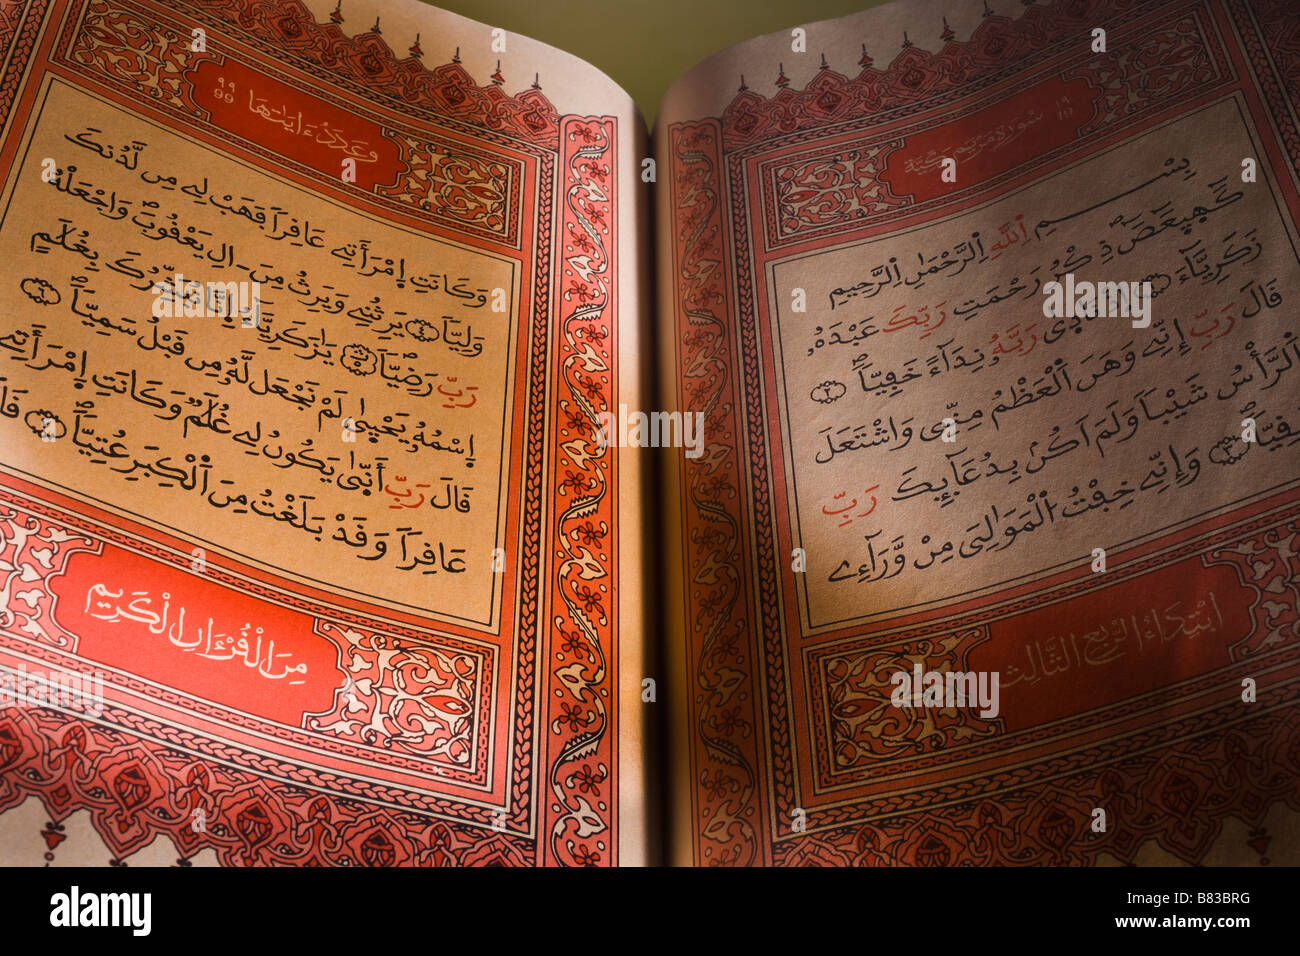 Pages of text in a Koran - Stock Image